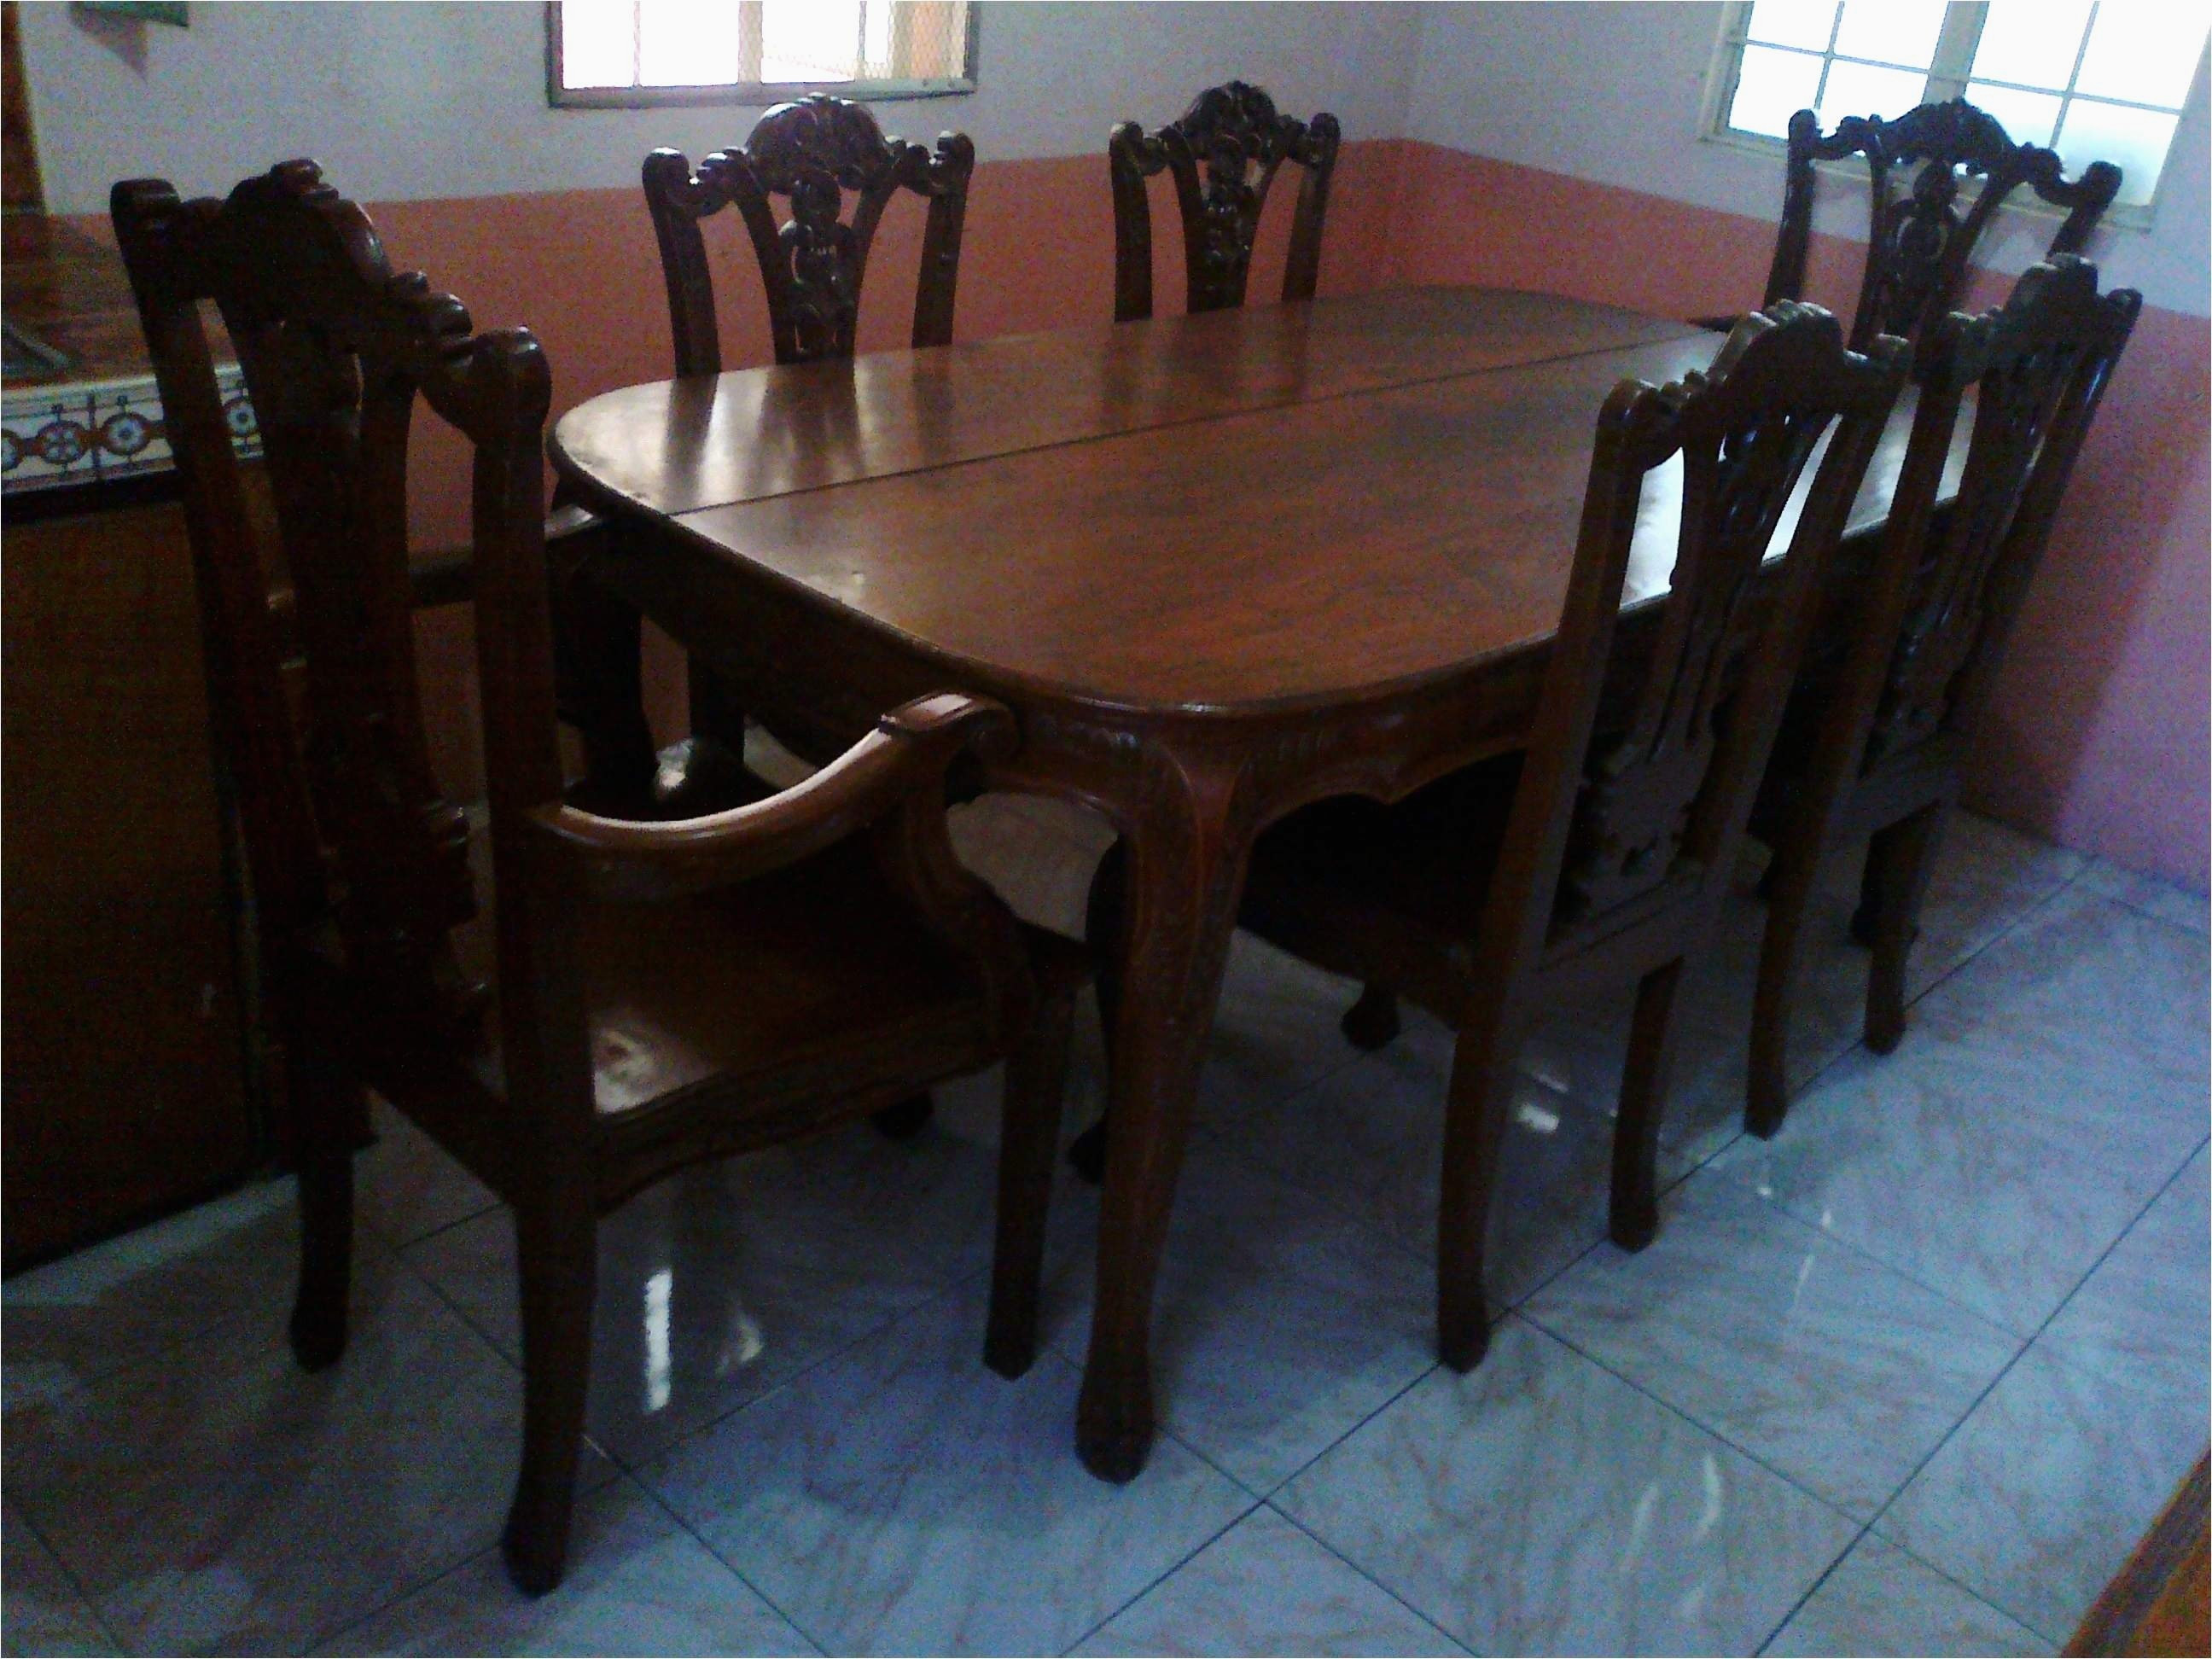 hardwood flooring nanaimo of 21 lovely used dining table and chairs sale welovedandelion com with regard to used dining table and chairs sale fresh 19 modest rustic dining tables for sale stampler of